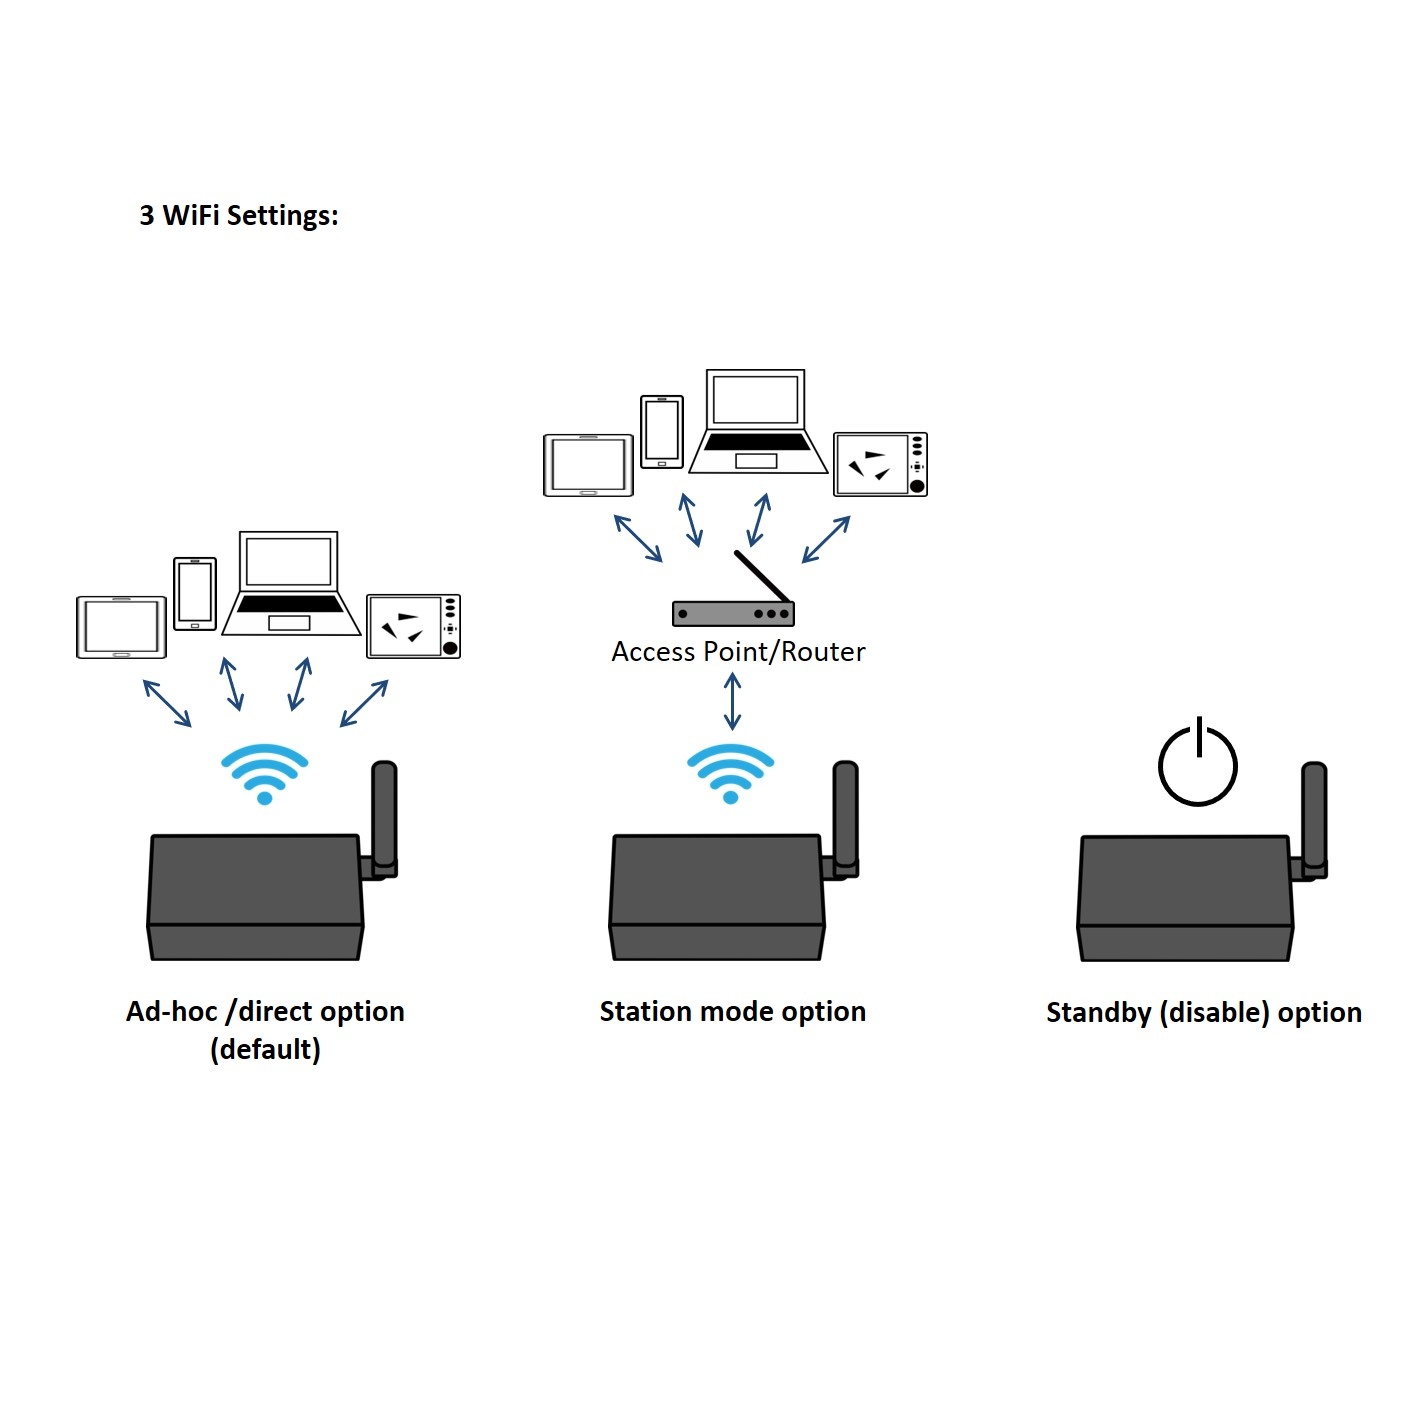 3 Marine Bi-directional WiFi to NMEA 2000 options diagram. Direct WiFi connection, Connecting NMEA 2000 though to a router or access point, or dissabling WiFi function if needed.